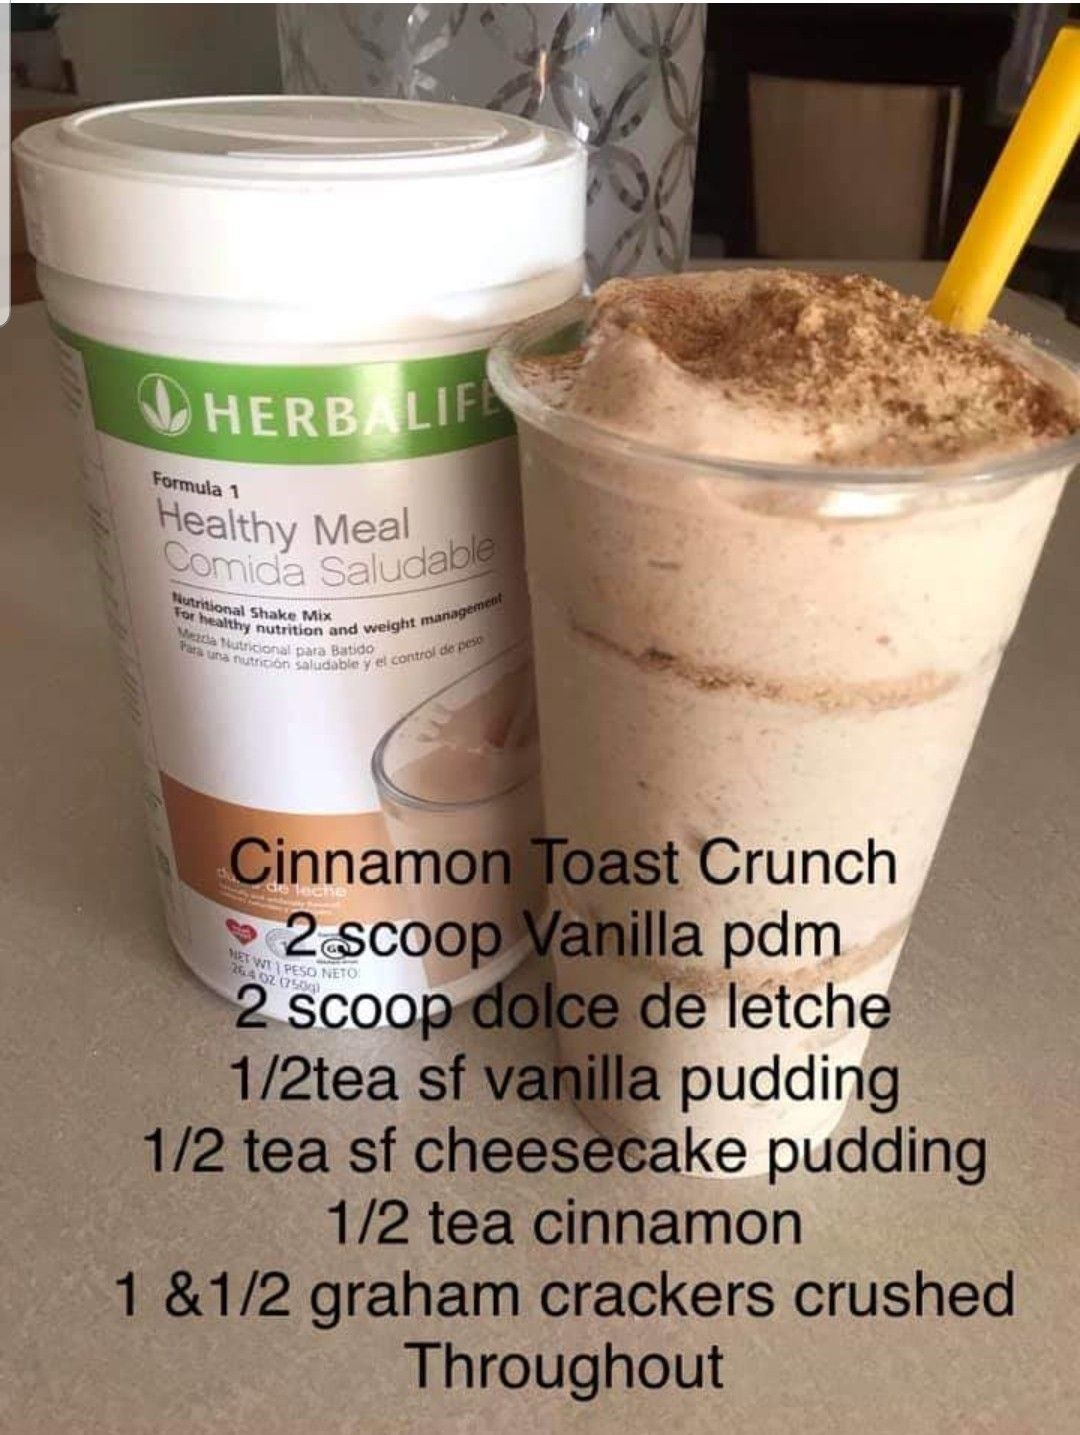 Pin By Selina Bautista On Shake It Up In 2020 Herbalife Shake Recipes Herbalife Recipes Herbal Life Shakes